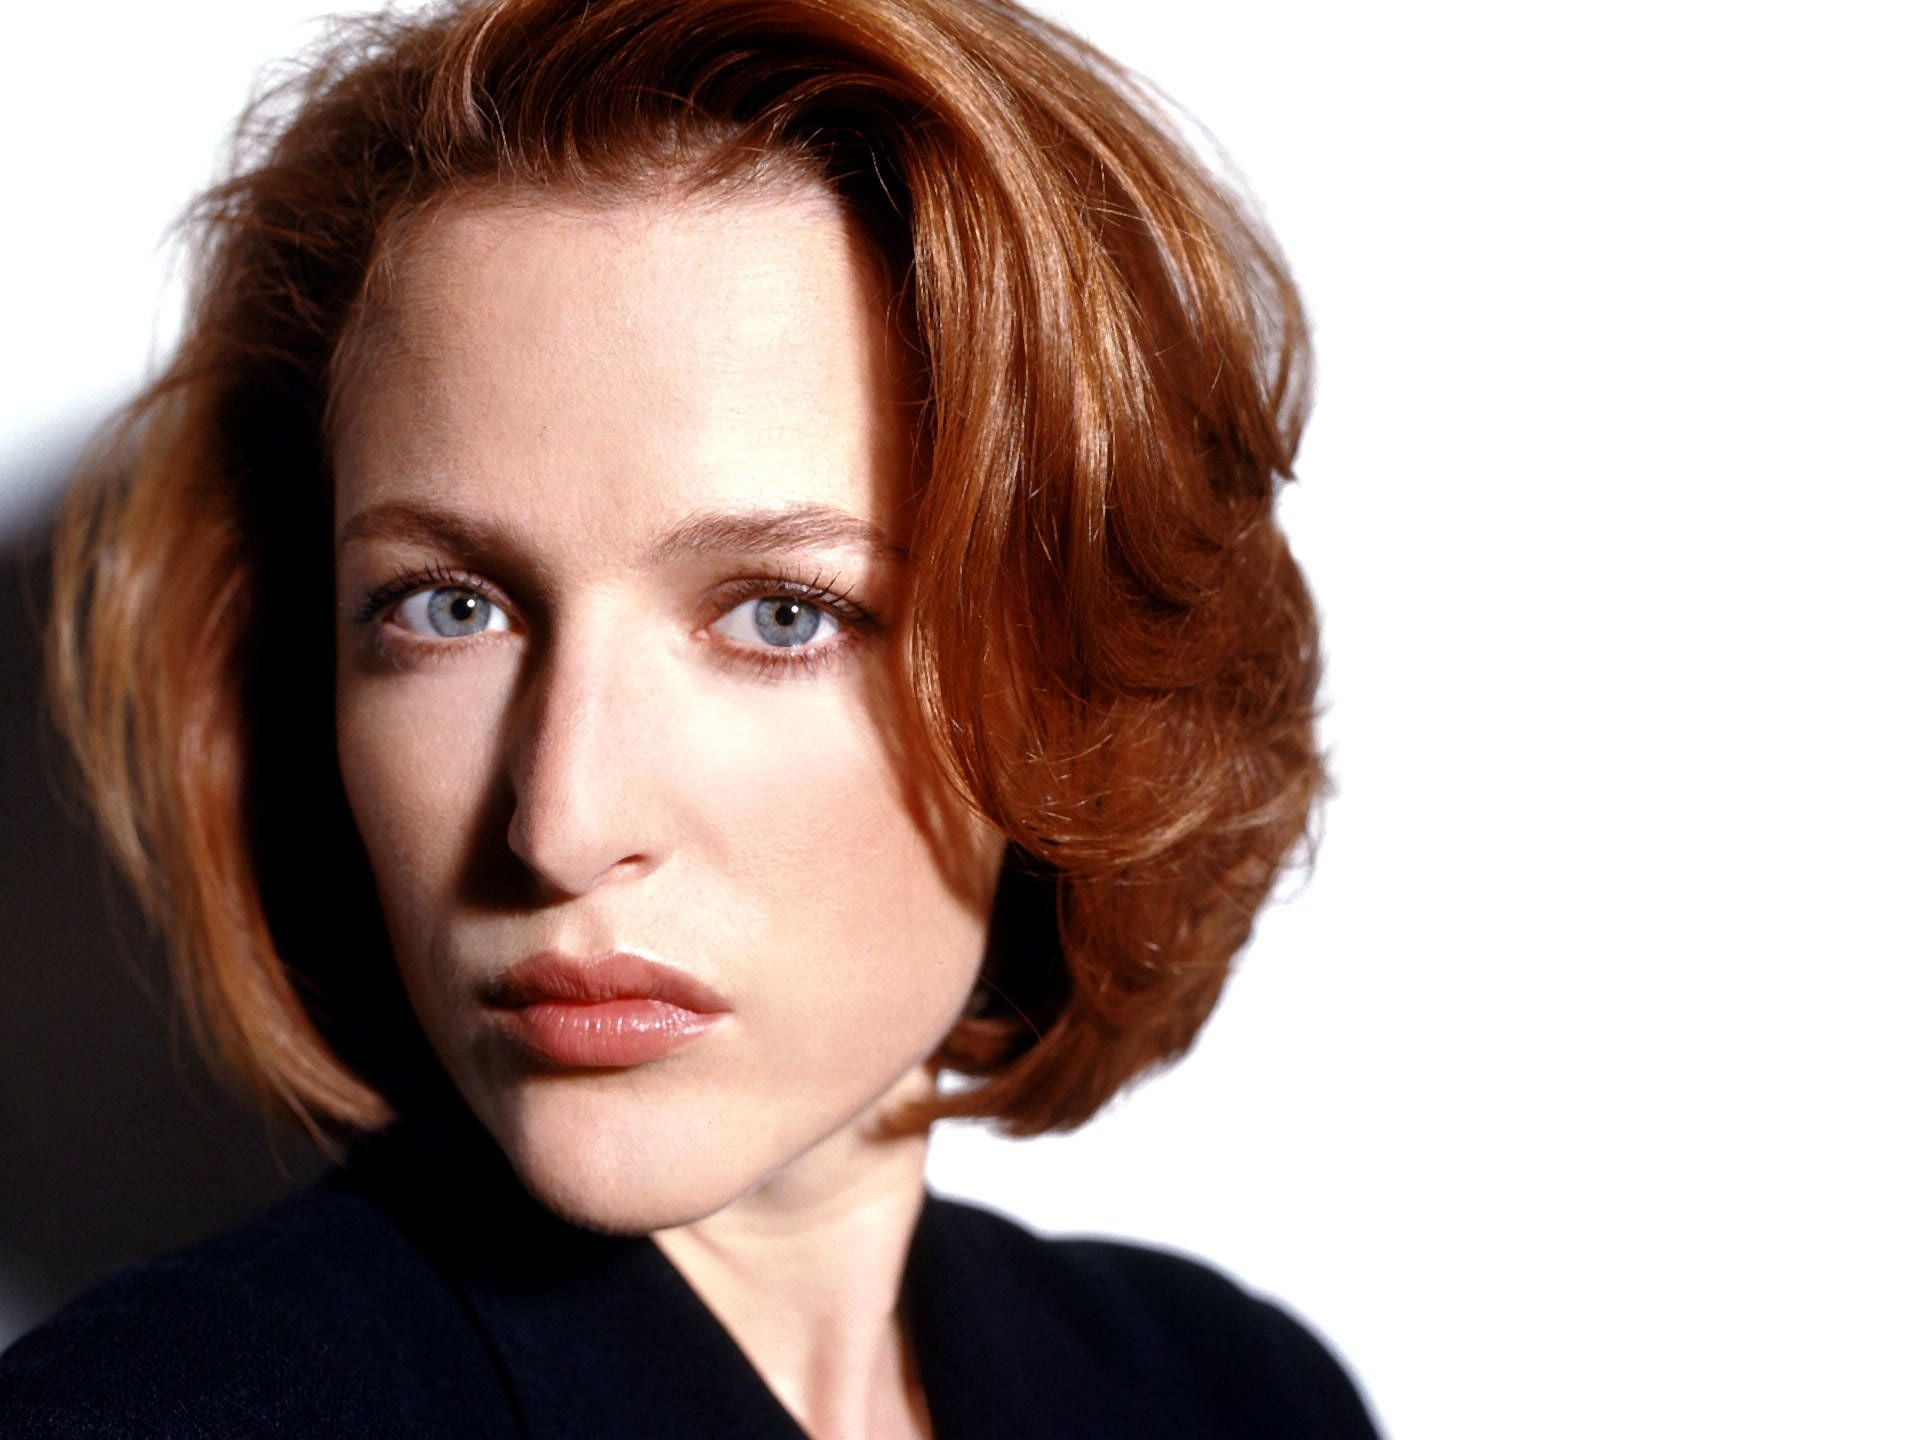 Sport Cars Wallpapers With Girls Gillian Anderson Wallpapers Hd Free Download